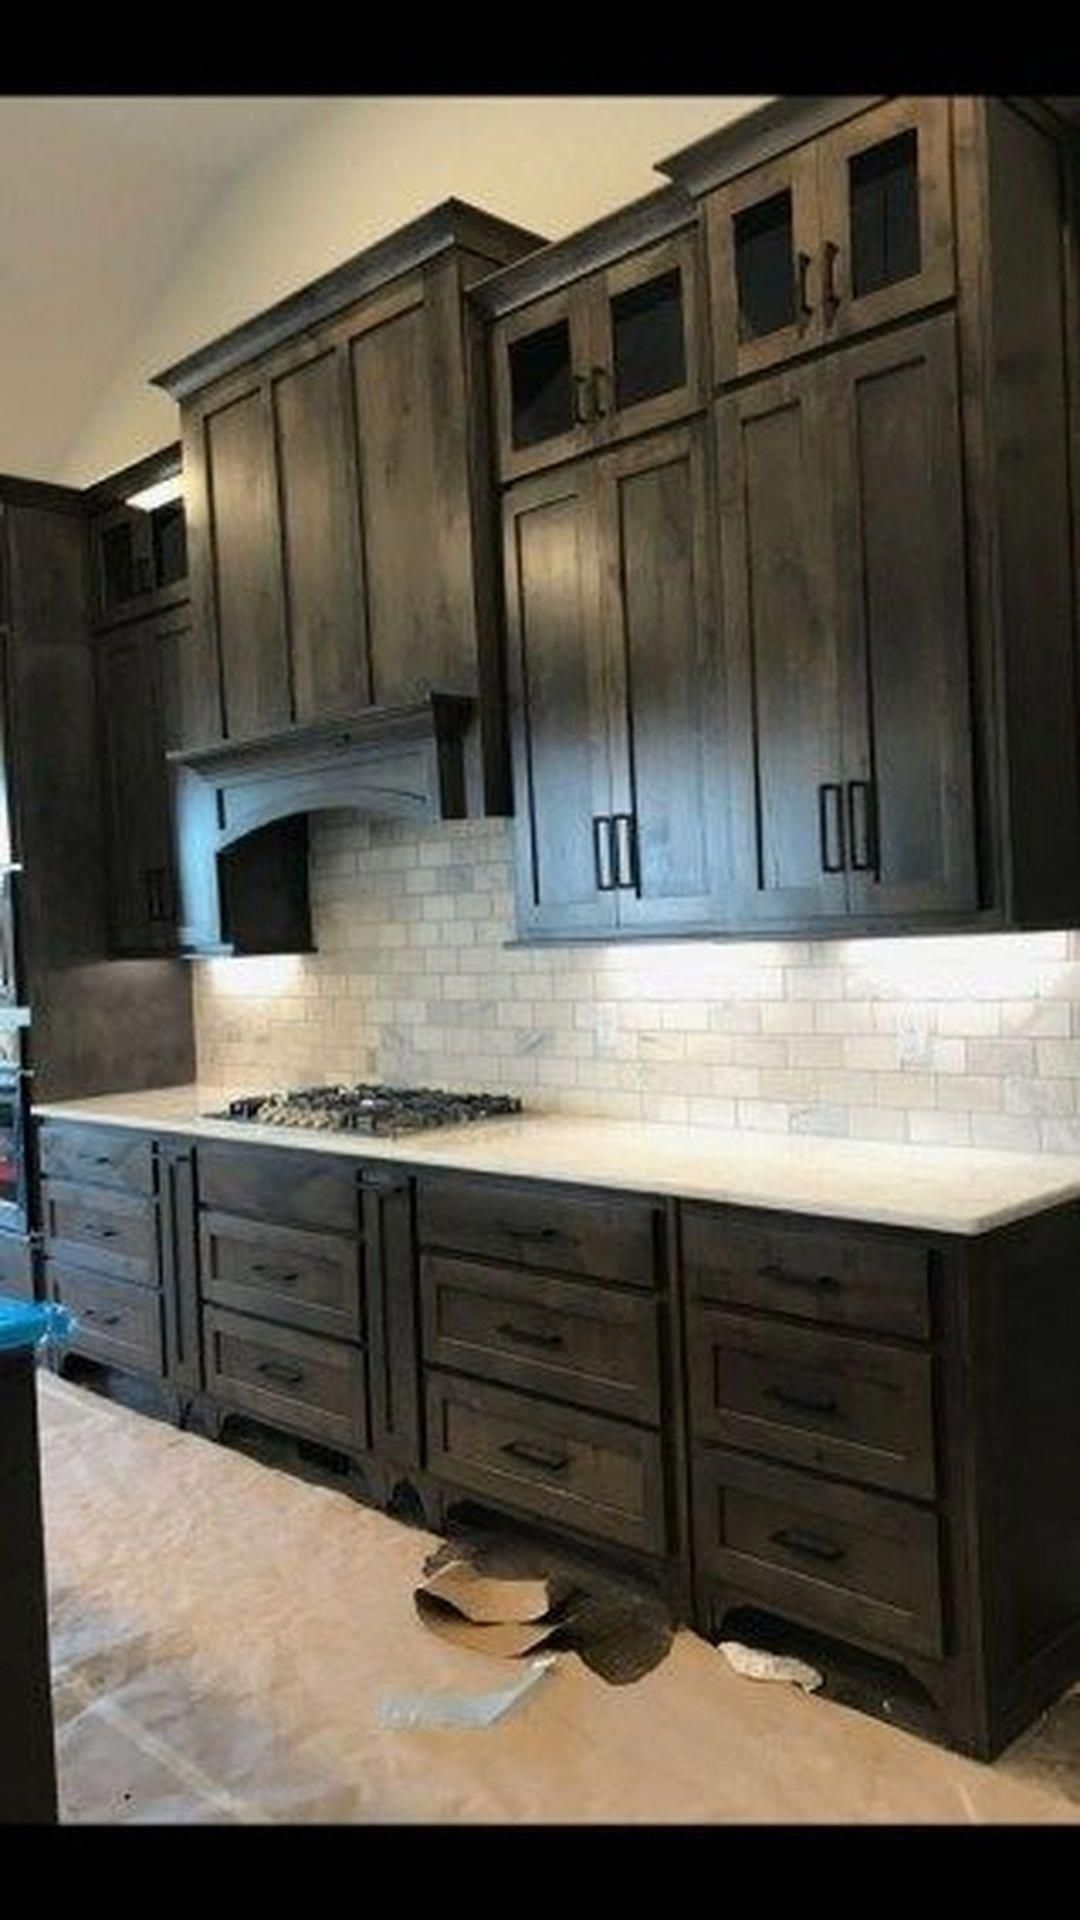 Modern Kitchen Remodel Before And After And Condo Kitchen Remodel Faucets In 2020 Rustic Kitchen Cabinets Stained Kitchen Cabinets Rustic Kitchen Design